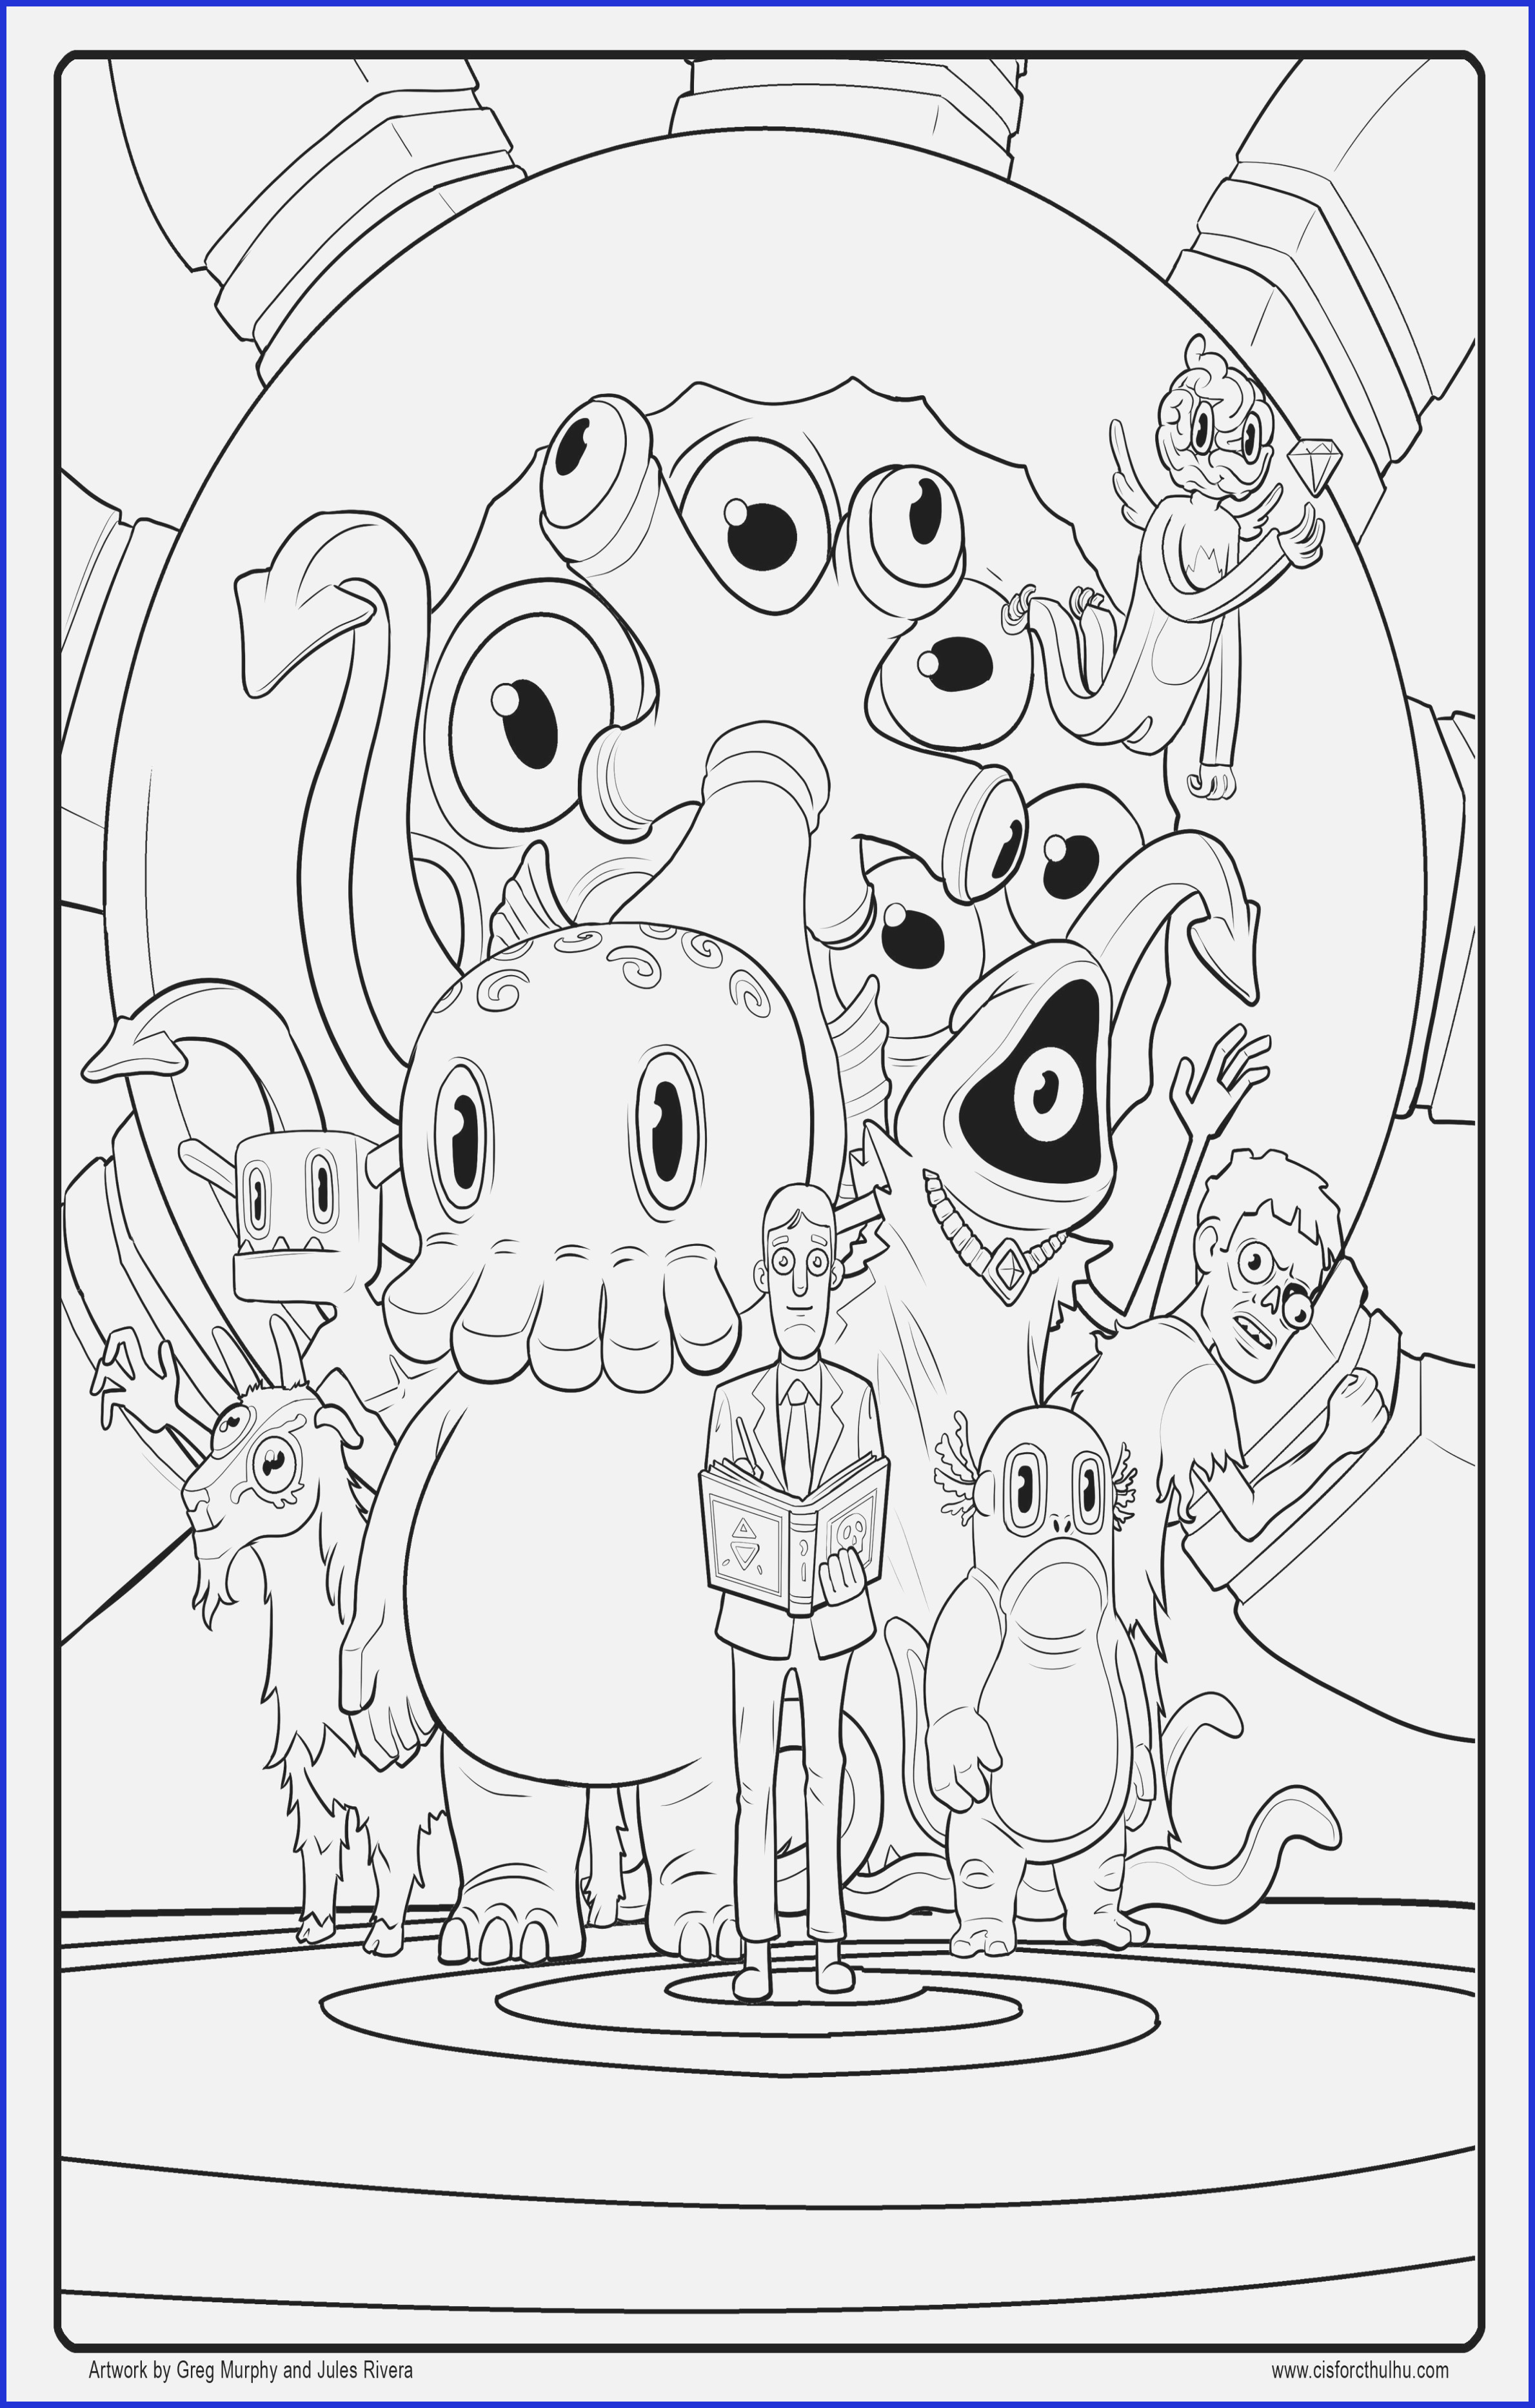 Free Scary Halloween Coloring Pages 12 Cute Halloween Coloring Pages That Are Scary Wwwgsfl